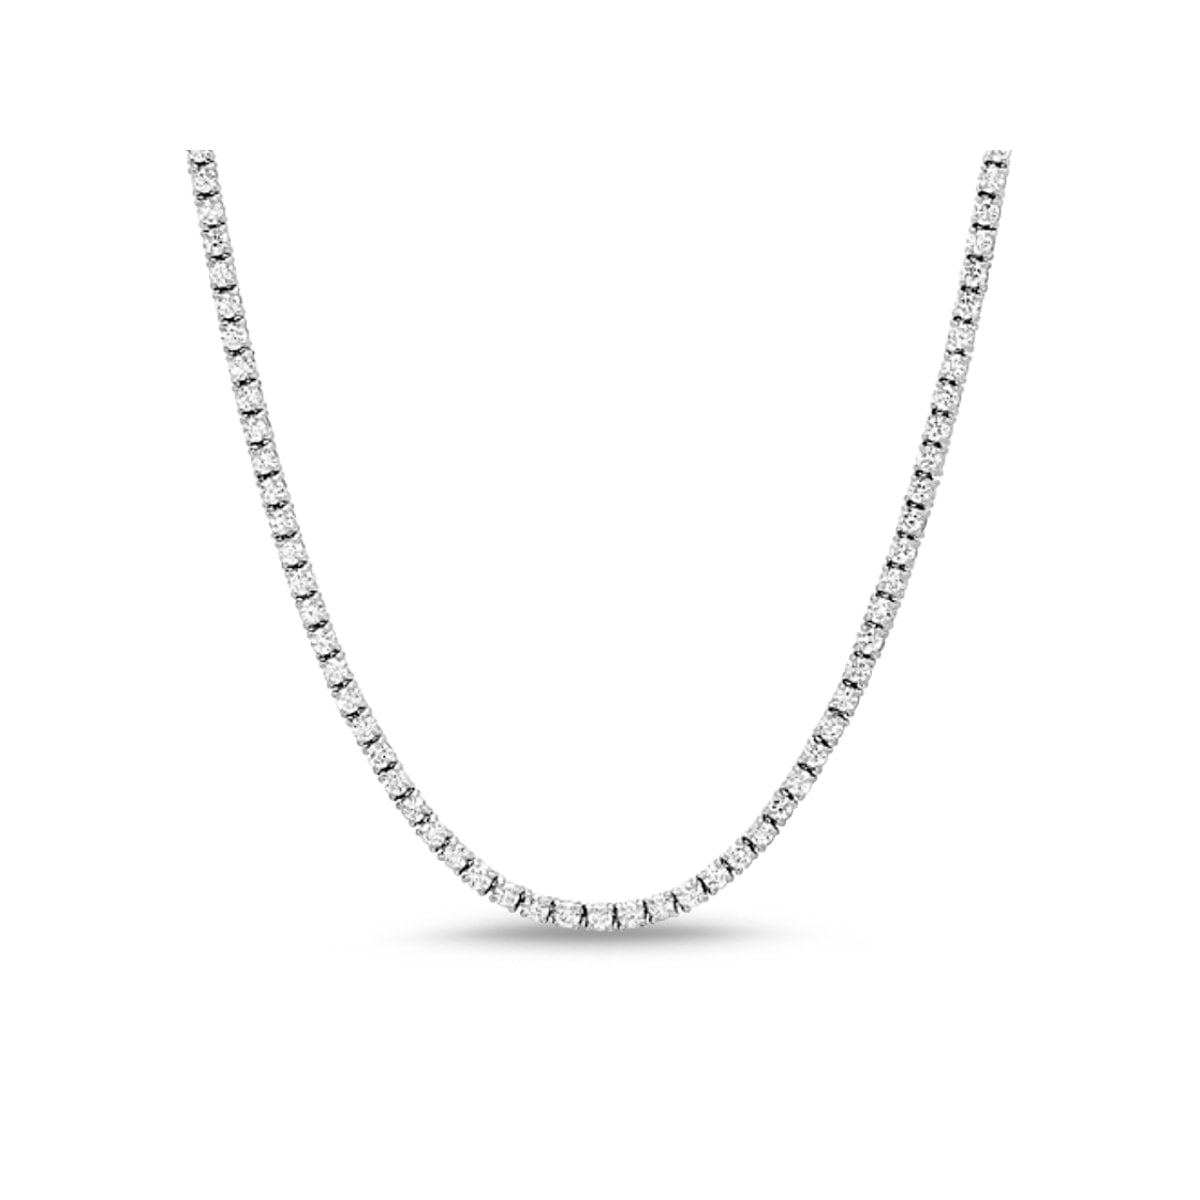 Monette 4 Prong Diamond Necklace in 18k White Gold Vermeil